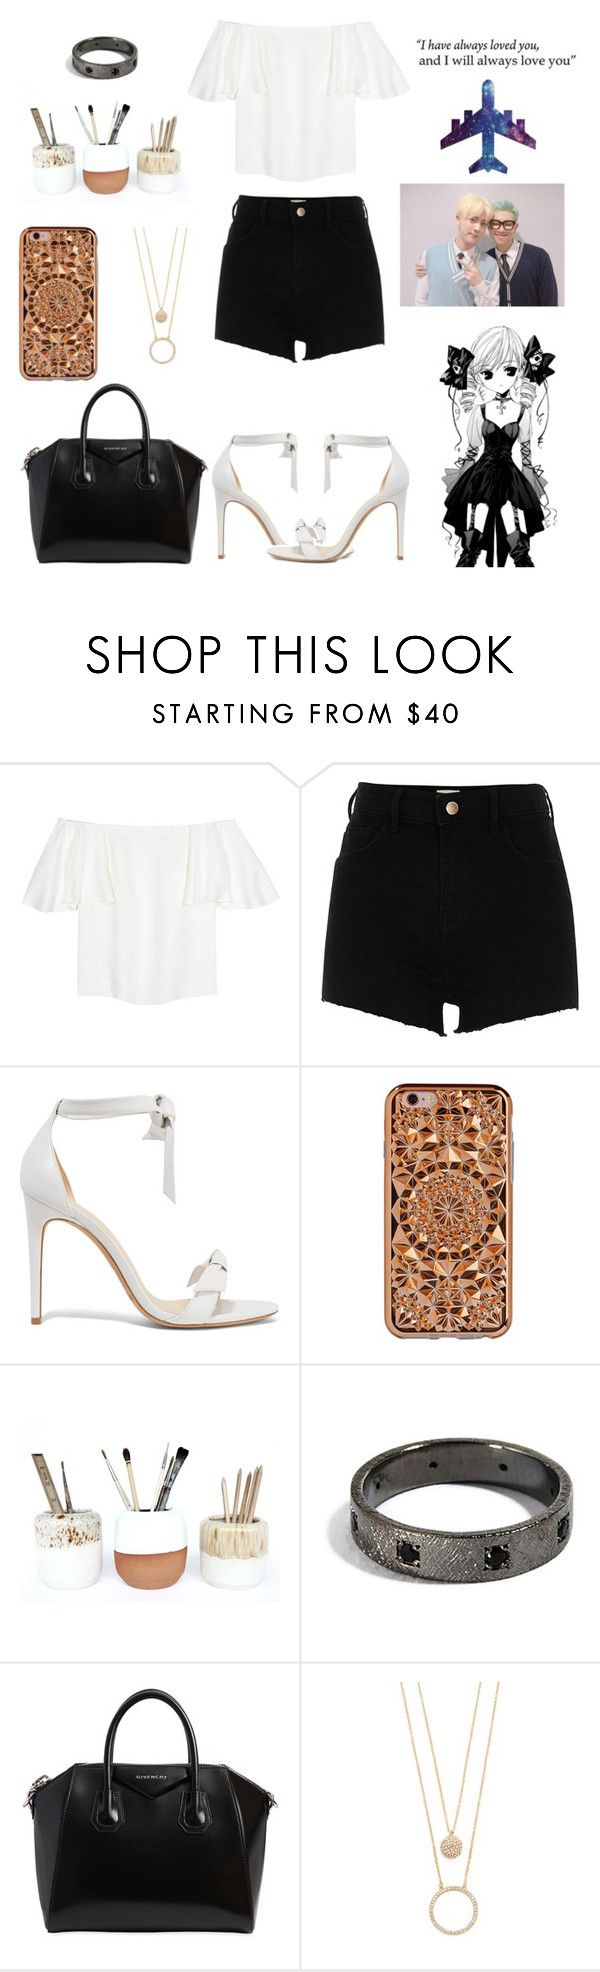 """""""I can't draw"""" by xx-secret-xx ❤ liked on Polyvore featuring Valentino, River Island, Alexandre Birman, Felony Case, Studio Arhoj, Givenchy, Kate Spade and WALL"""